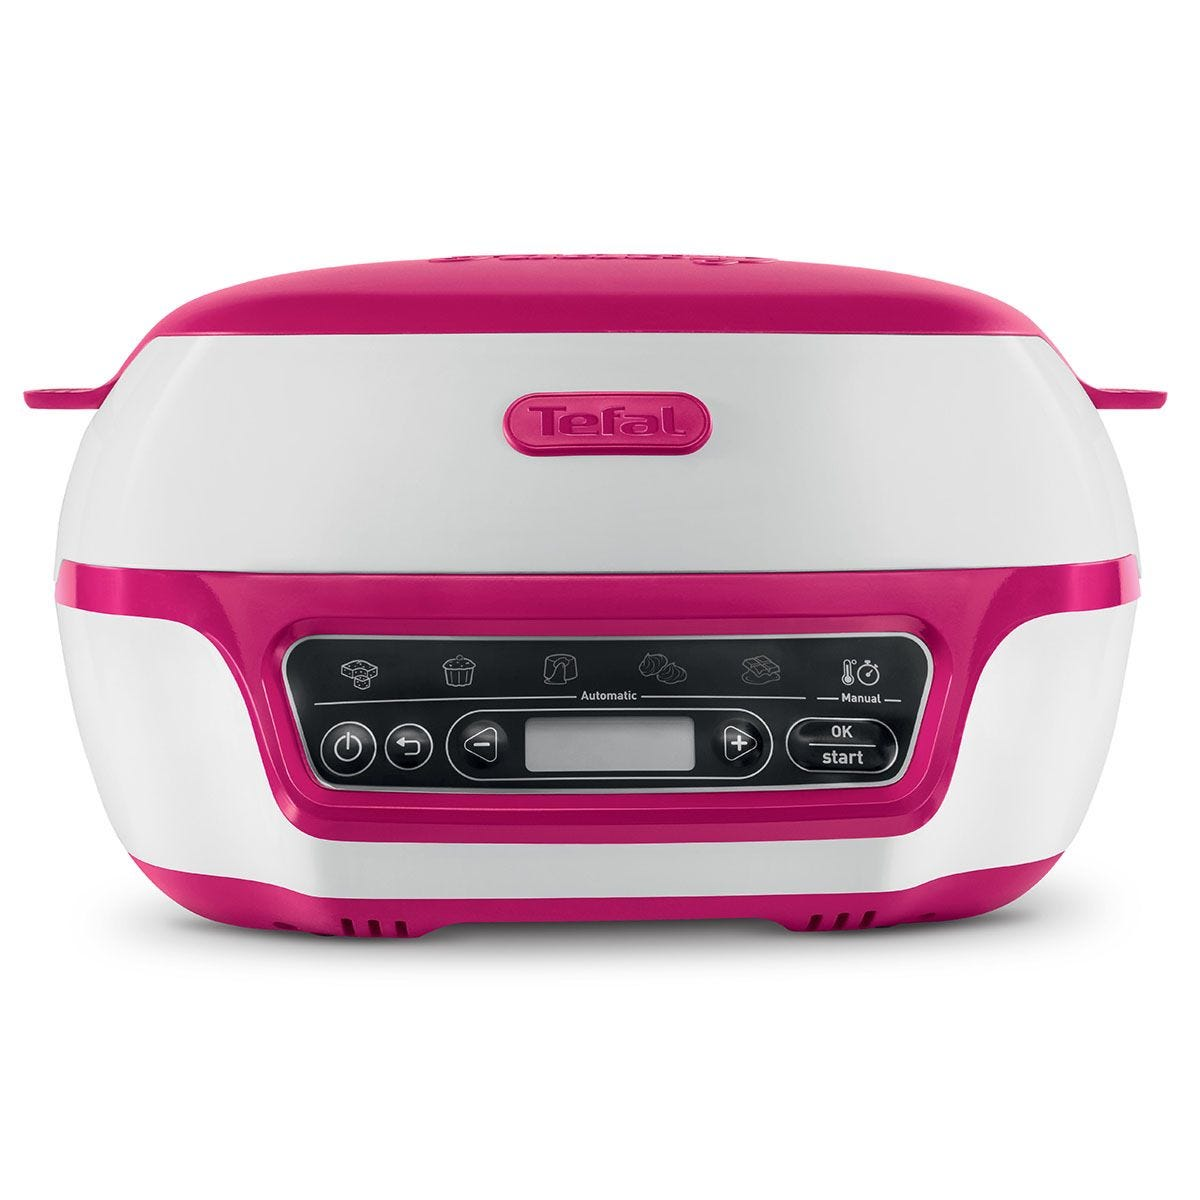 Tefal Bread & Cake Factory KD801840 Precision Bread and Cake Machine - Pink & White